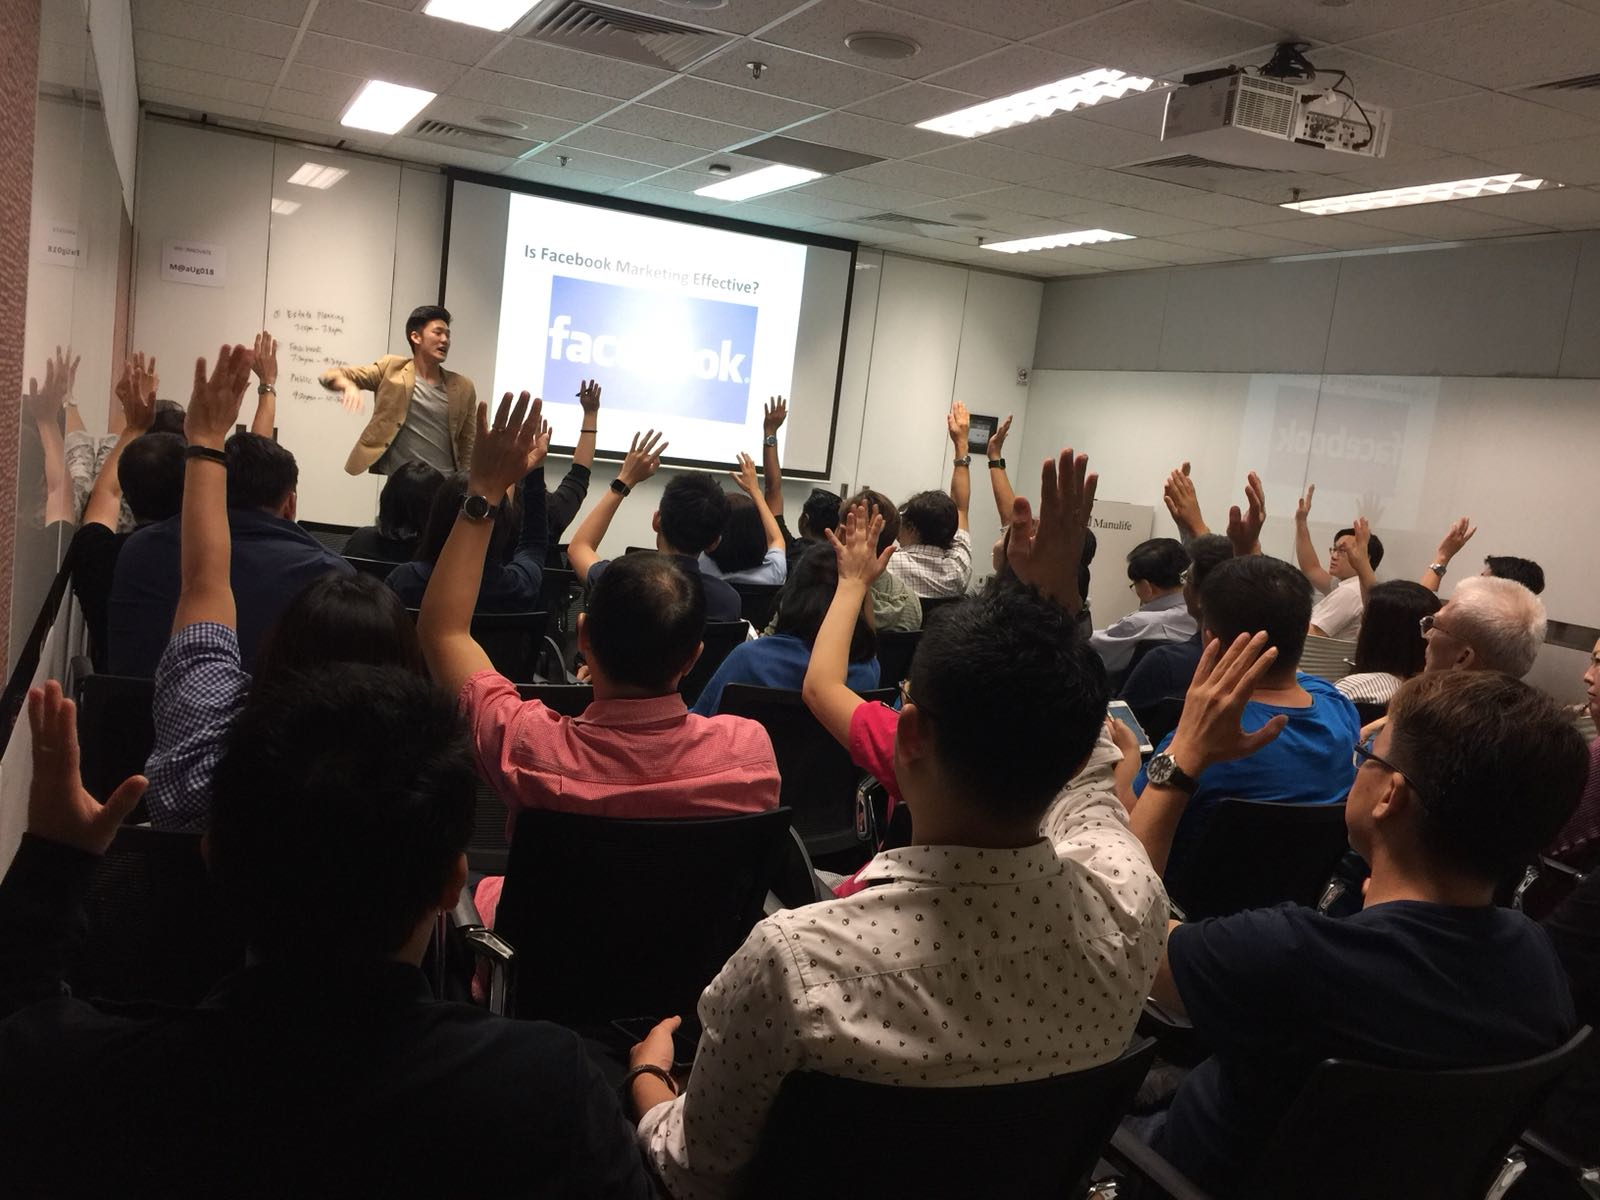 Alaric Ong with audience raising hands